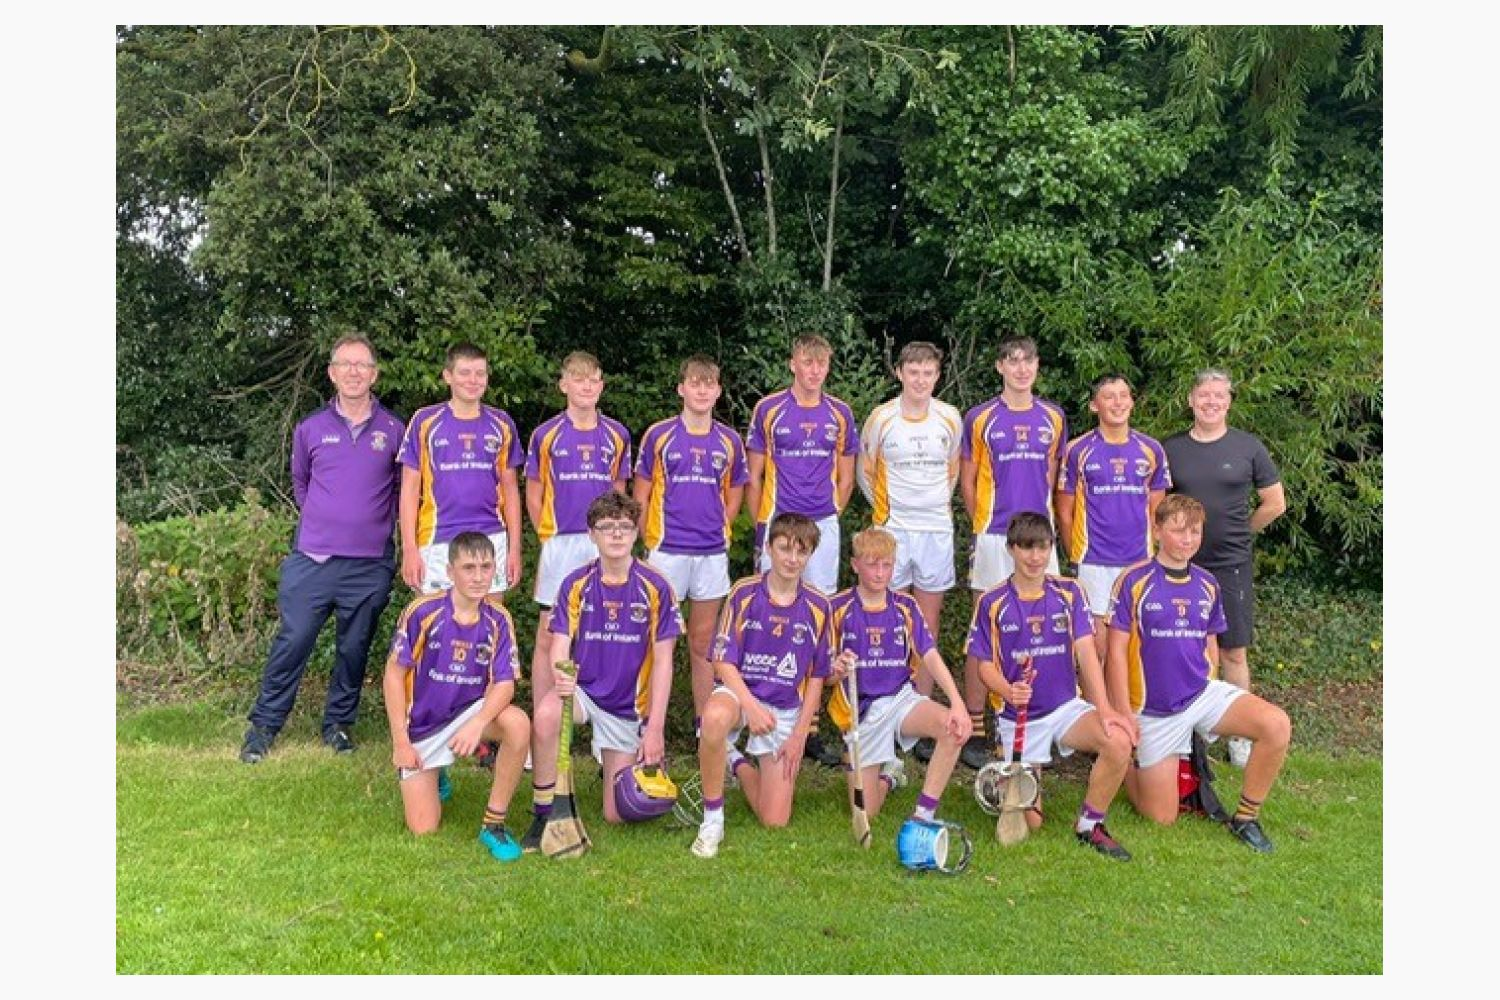 GREAT DOUBLE LEAGUE VICTORIES FOR U15A & B TEAMS